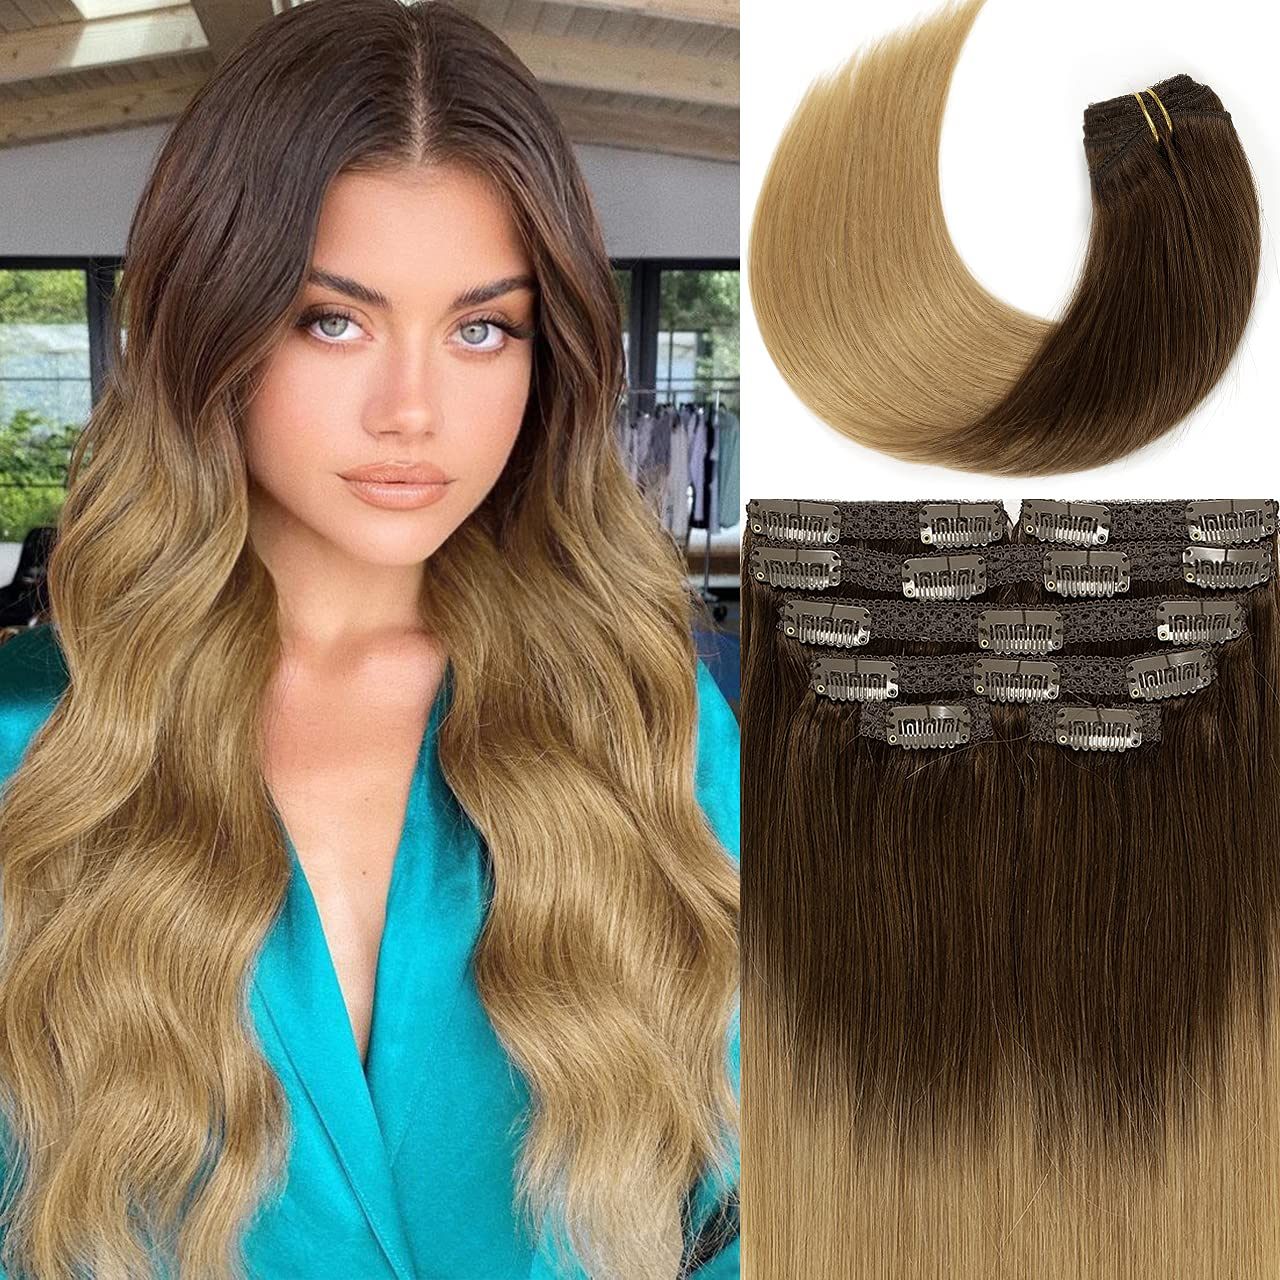 LacerHair 22 Inch low-pricing Clip in Human Darker Ombre Bro Extensions OFFicial Hair